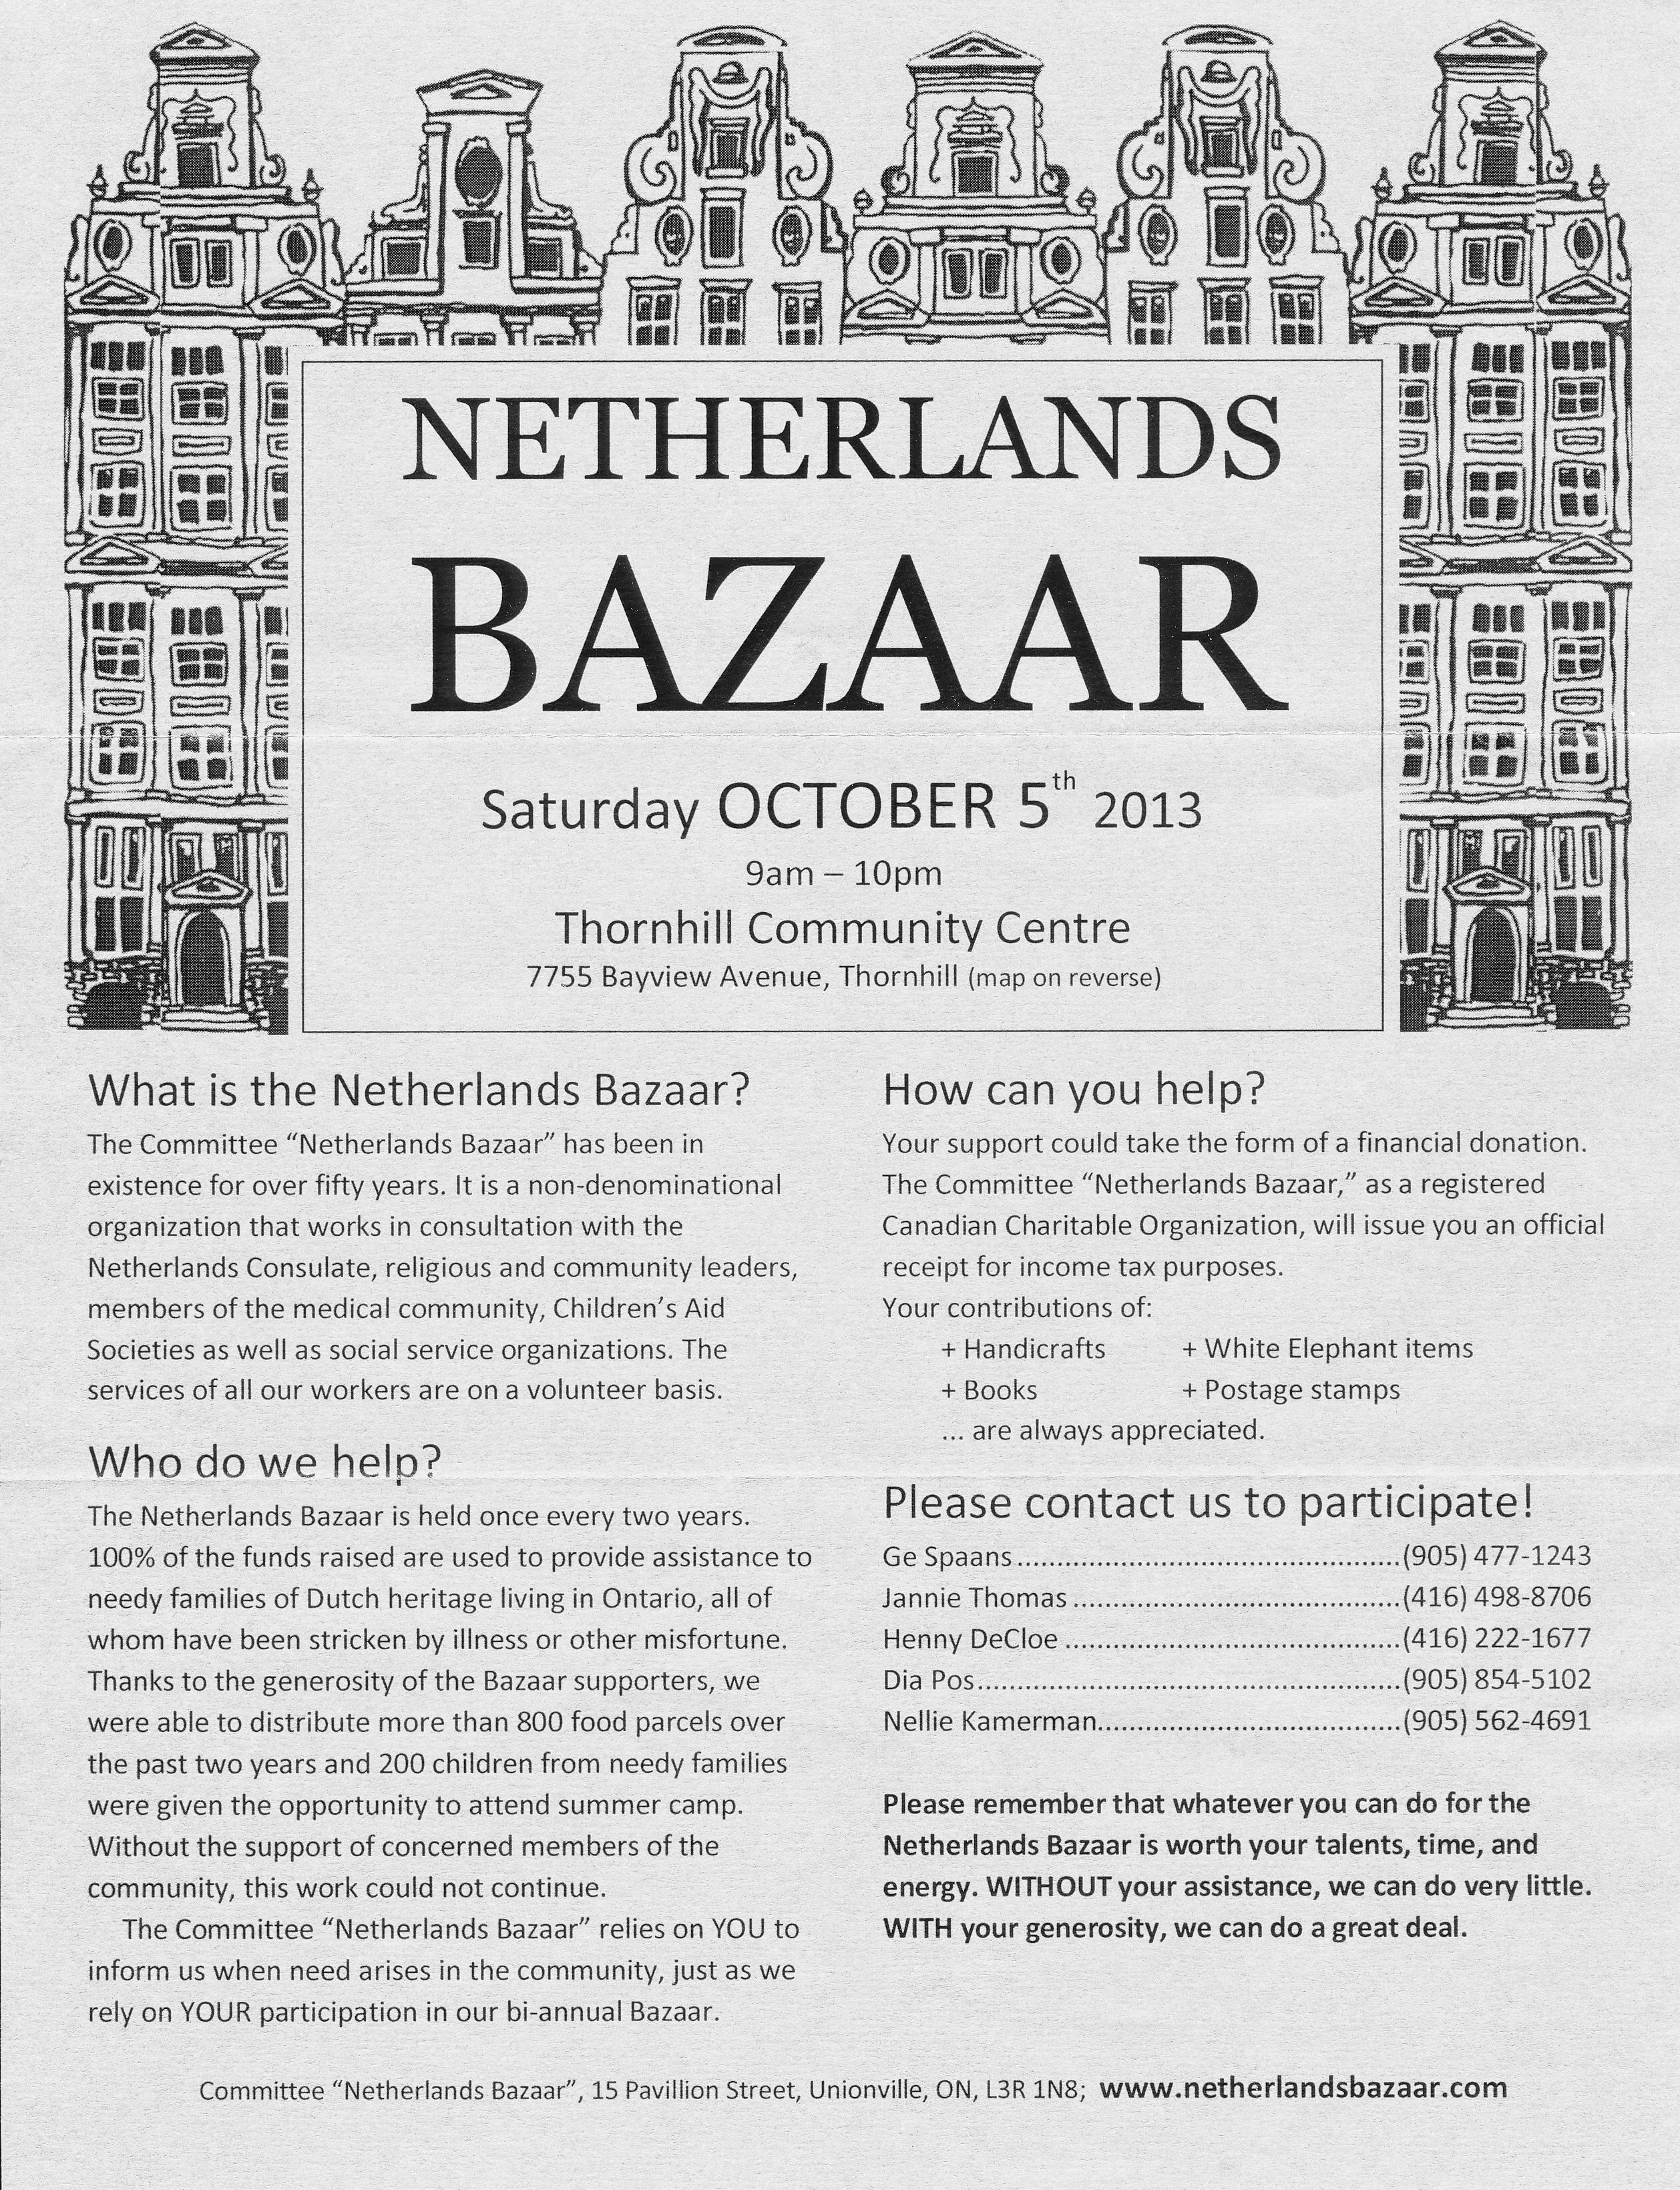 Toronto S Dutch Community Holds This Charitable Fundraiser Every Two Years Dutch Food Dutch Culture Dutch Treats Plus Book Sale Rummage Sale Cds And Lots